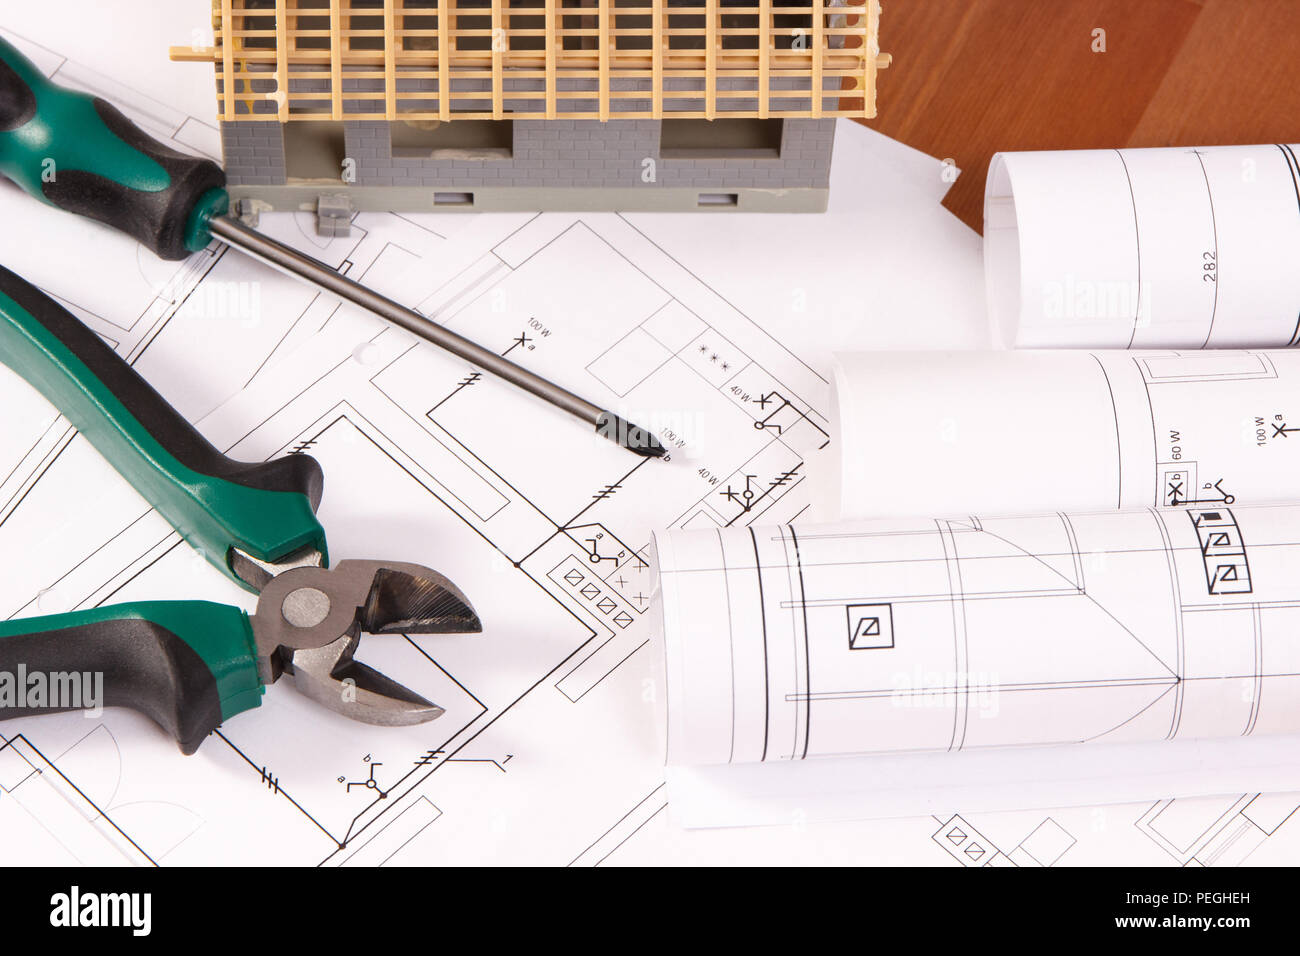 Electrical Drawings Or Diagrams Work Tools And House Under Diagram Building Construction Lying On Desk Home Concept